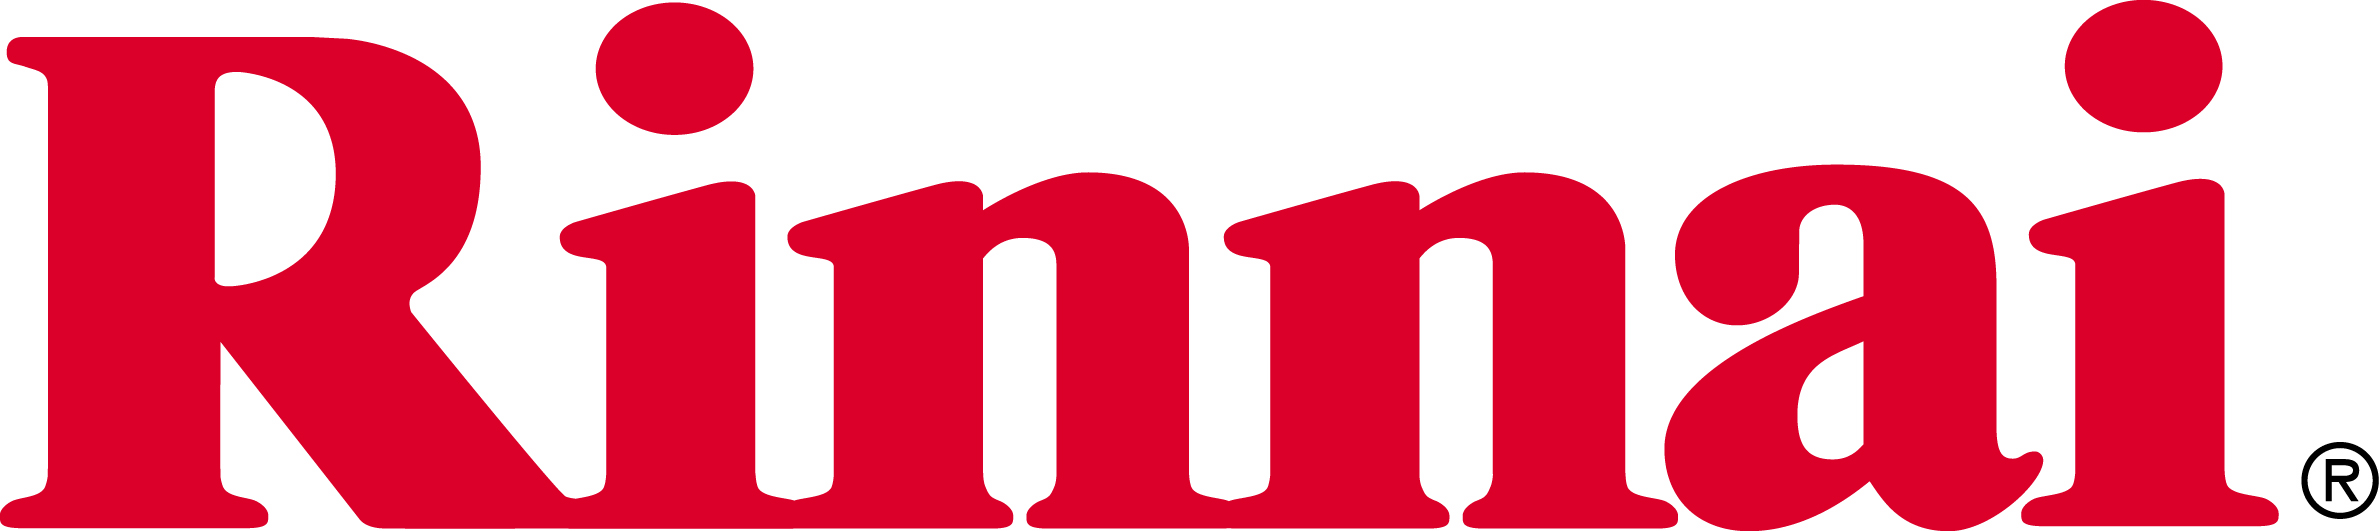 Rinnai Water Heater logo